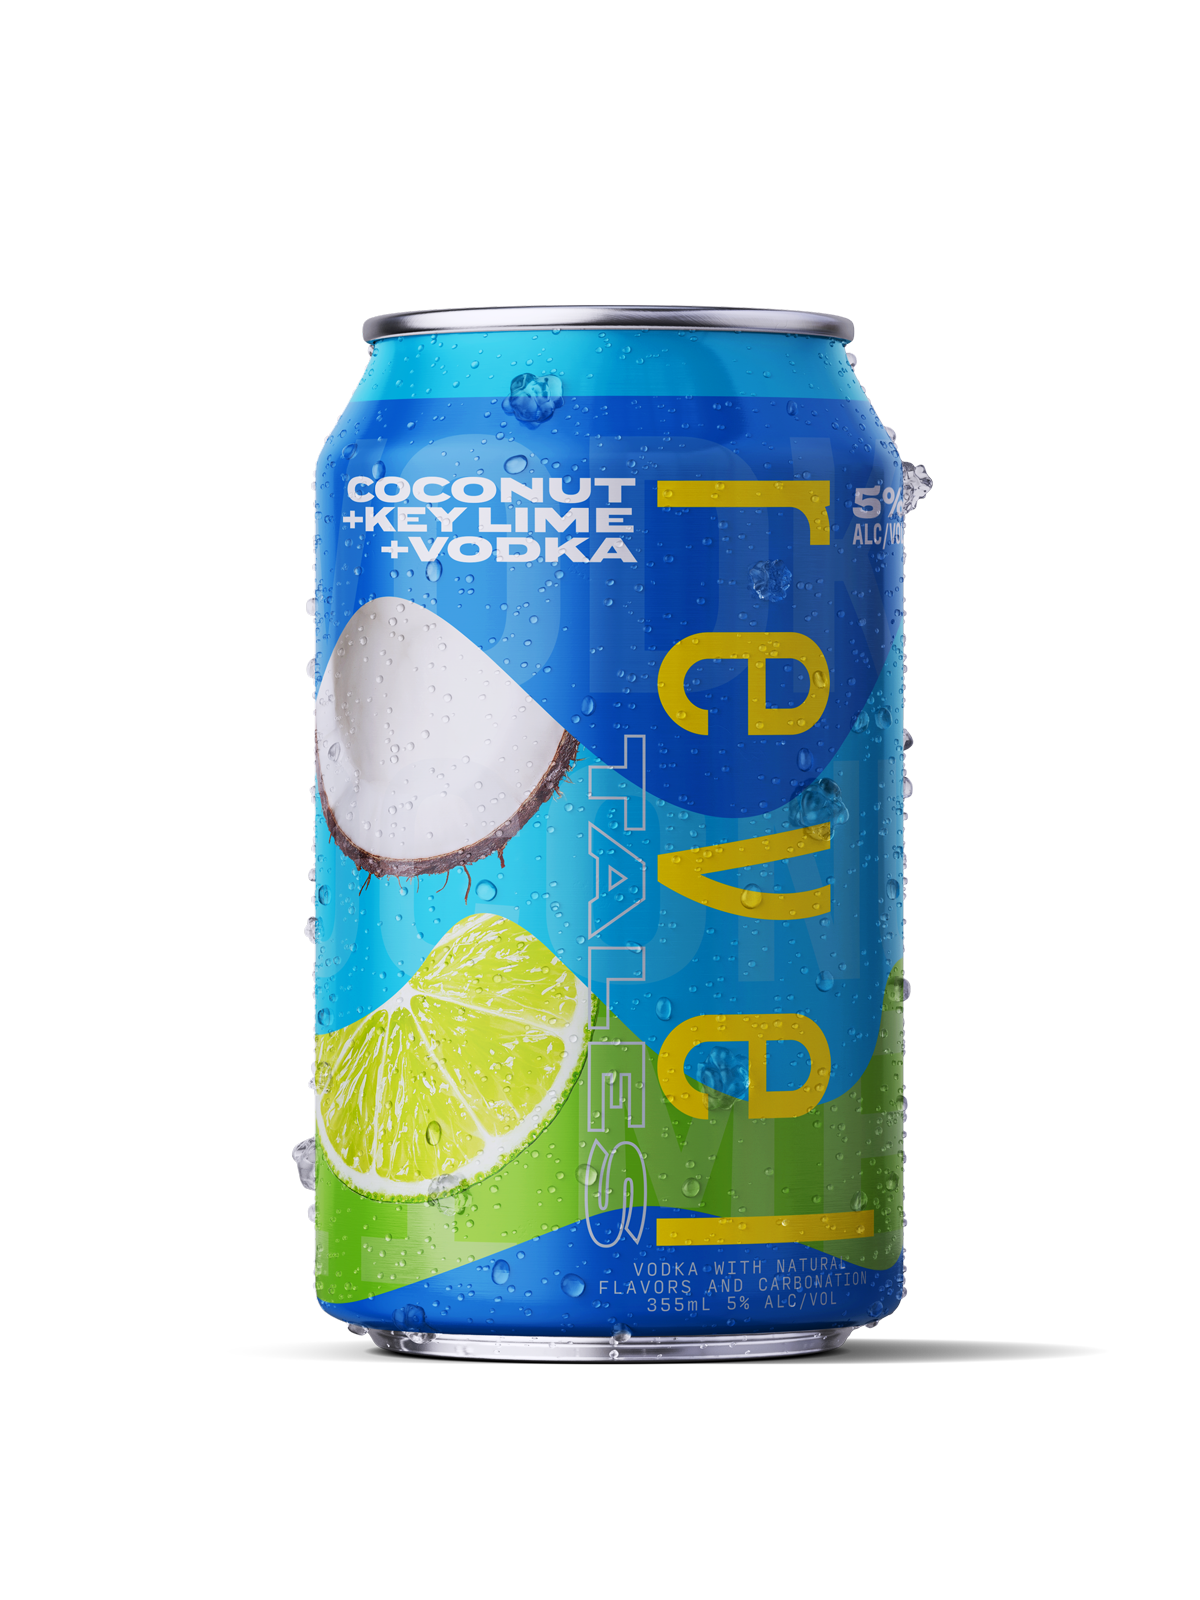 Revel Tales Florida Craft Canned Cocktails. Coconut+Key Lime+Vodka